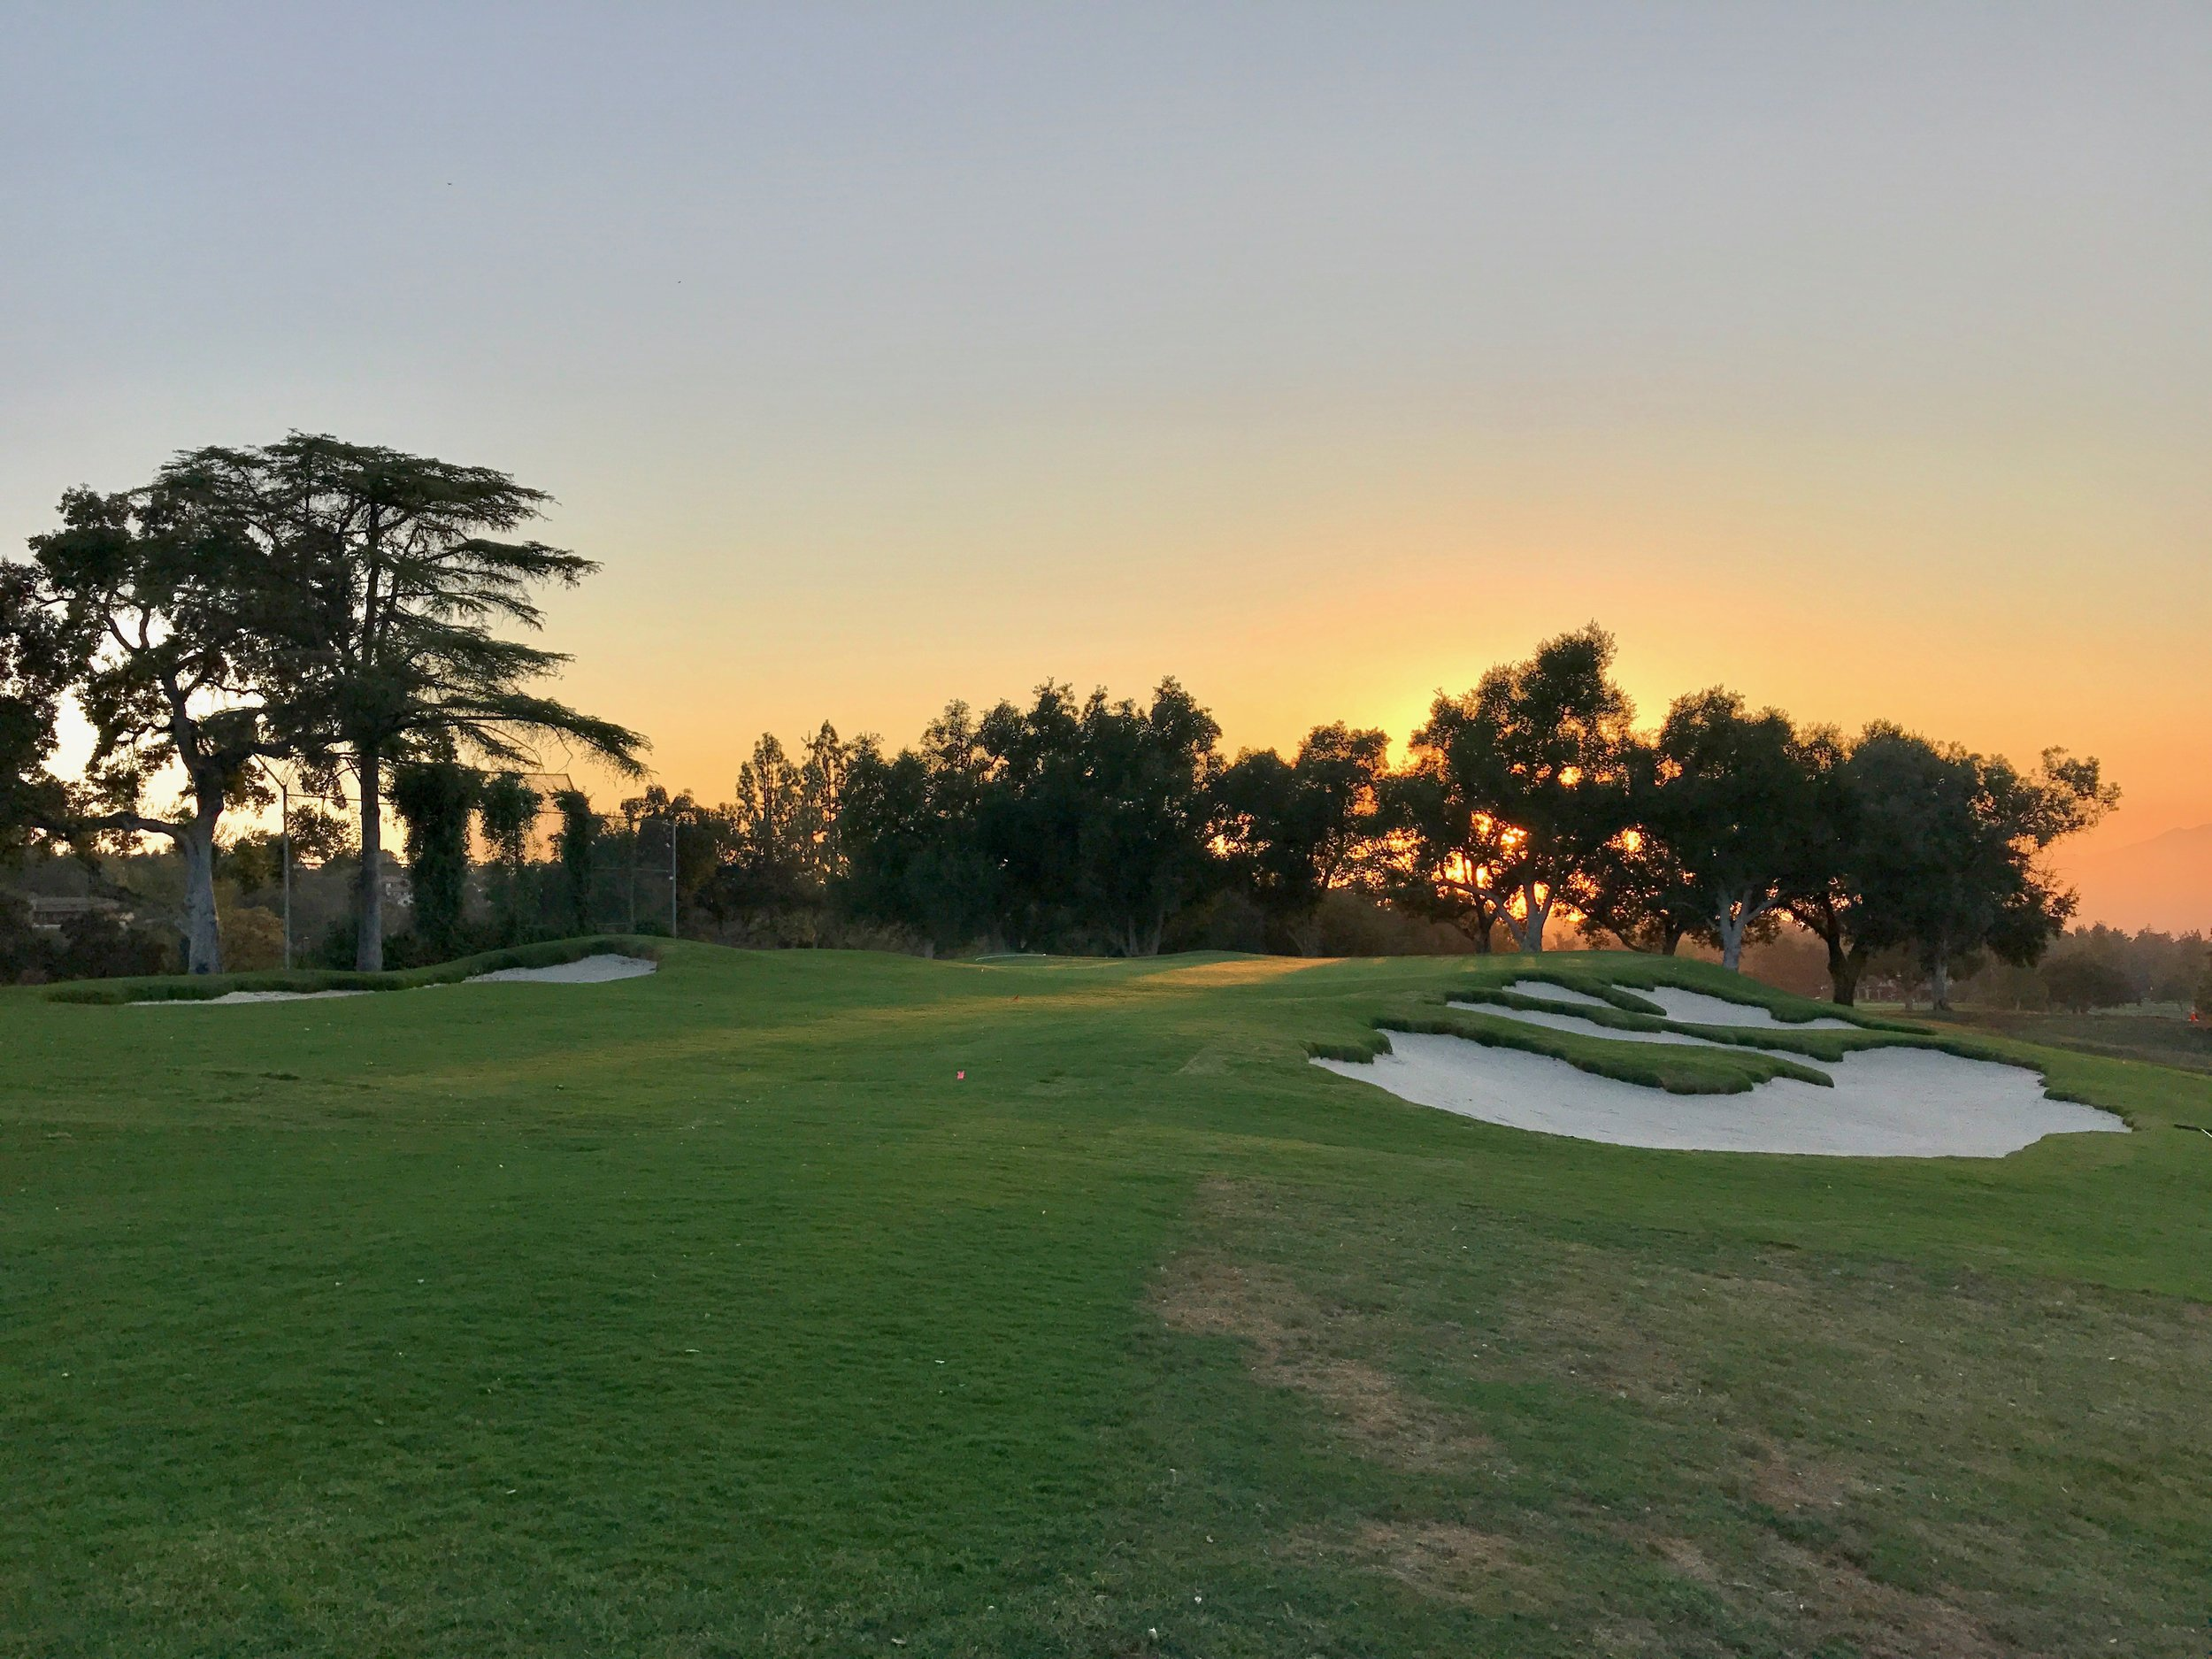 A view of the bunkers and approach highlighting the left to right angle angle of the opening to the green and the slopes that have been built up to help balls onto the green.